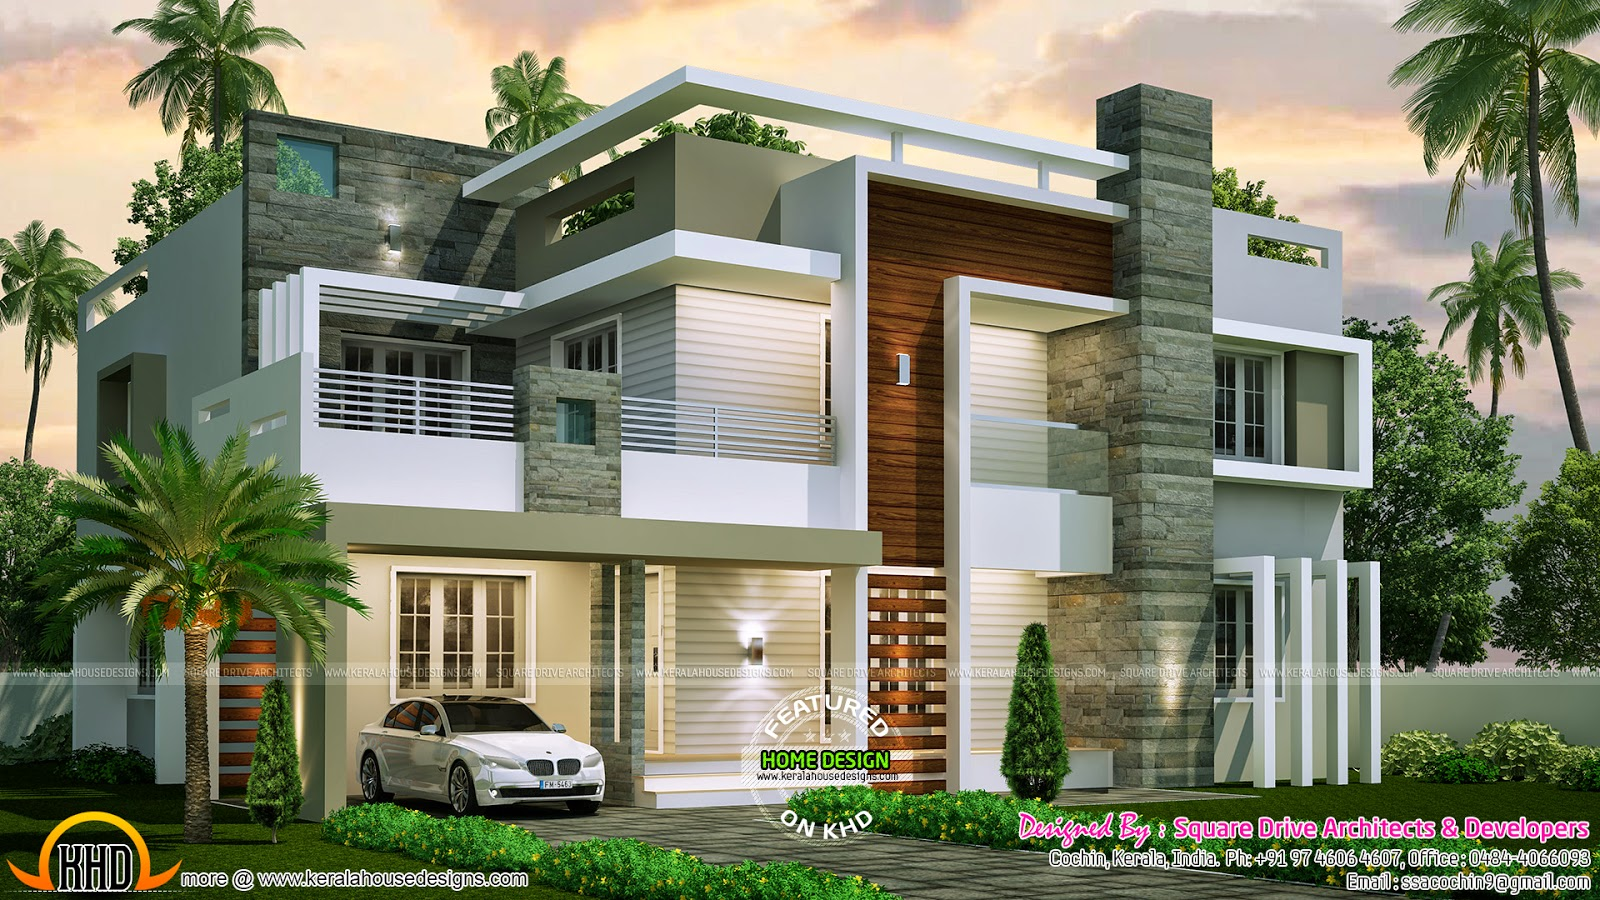 4 bedroom contemporary home design - Kerala home design ...